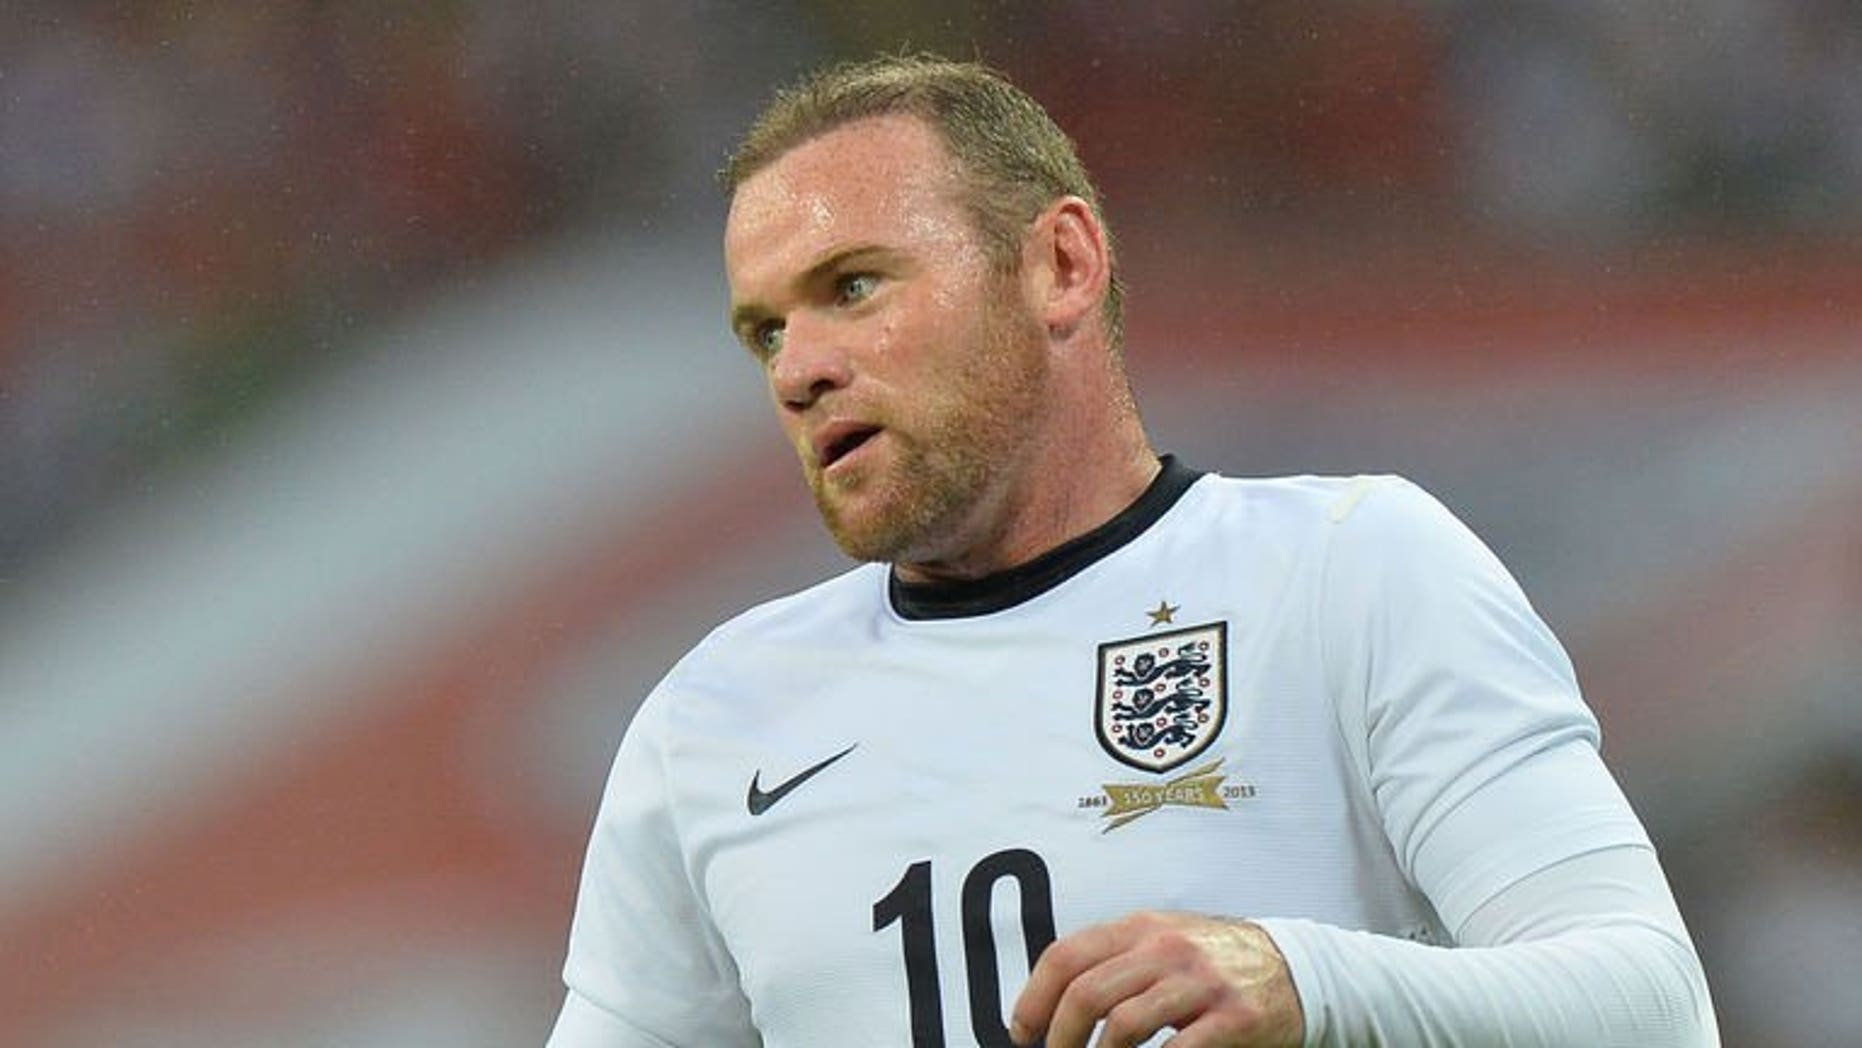 England striker Wayne Rooney plays at Wembley Stadium in London on August 14, 2013. Rooney is set to return as Manchester United face Swansea in David Moyes' first Premier League match in charge of the champions.